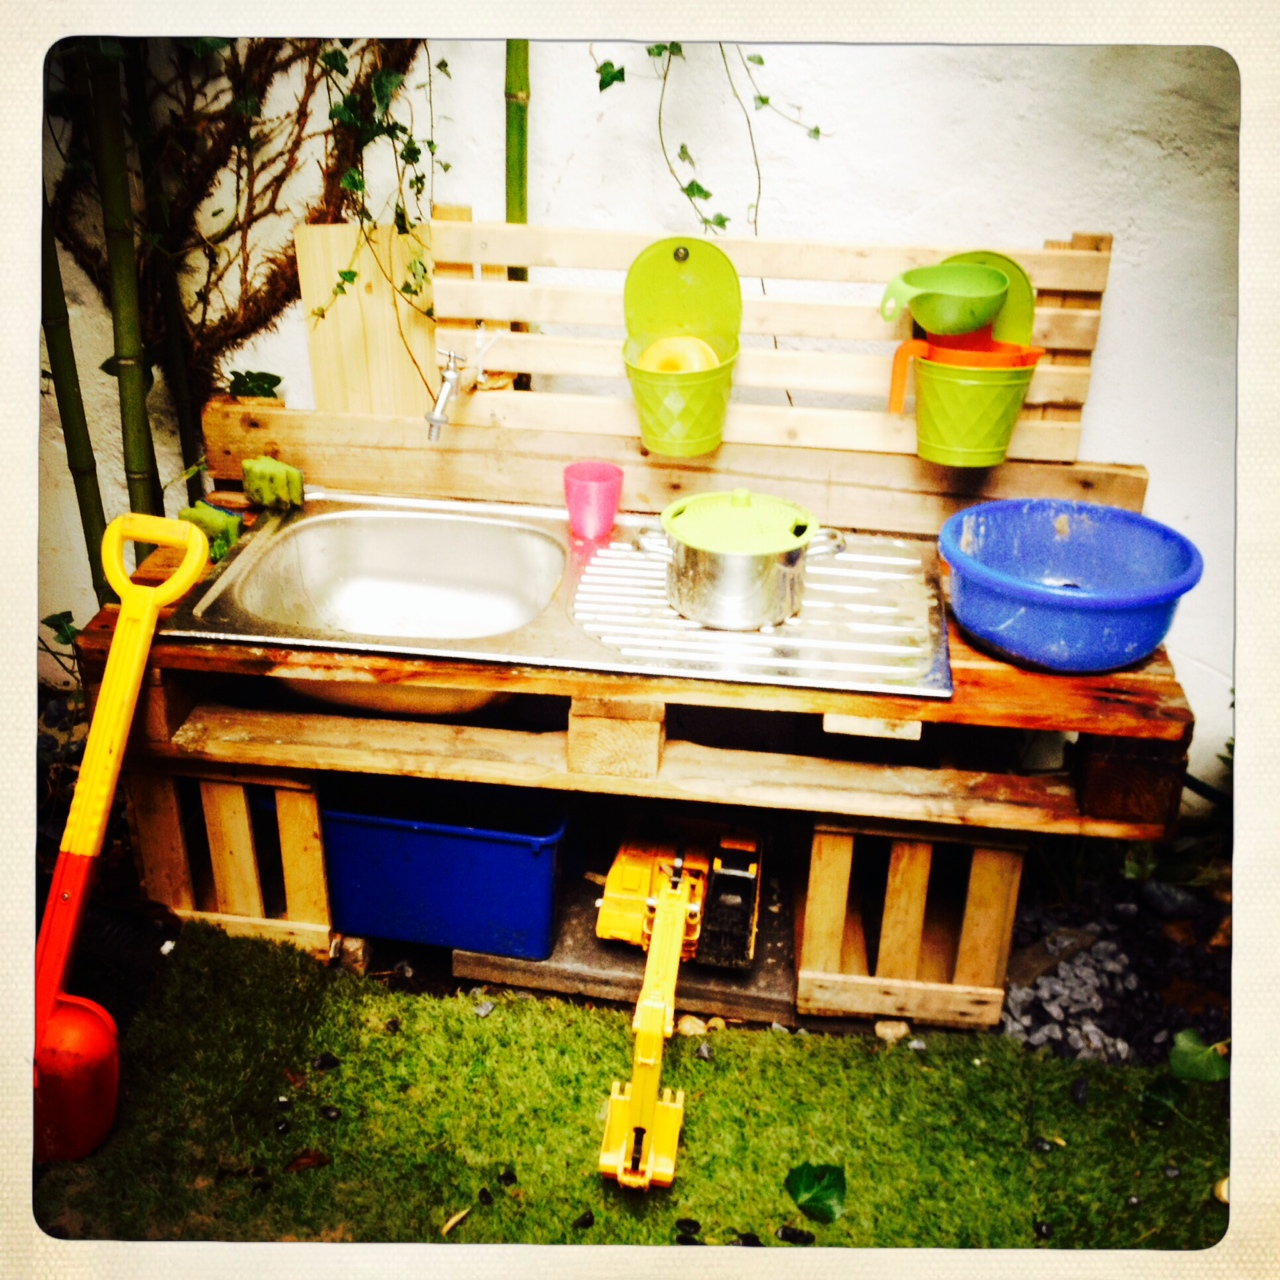 Outdoor Küche Obstkisten Outdoor Küche Kinder Diy ᐅ Matschküche Selber Bauen Aus